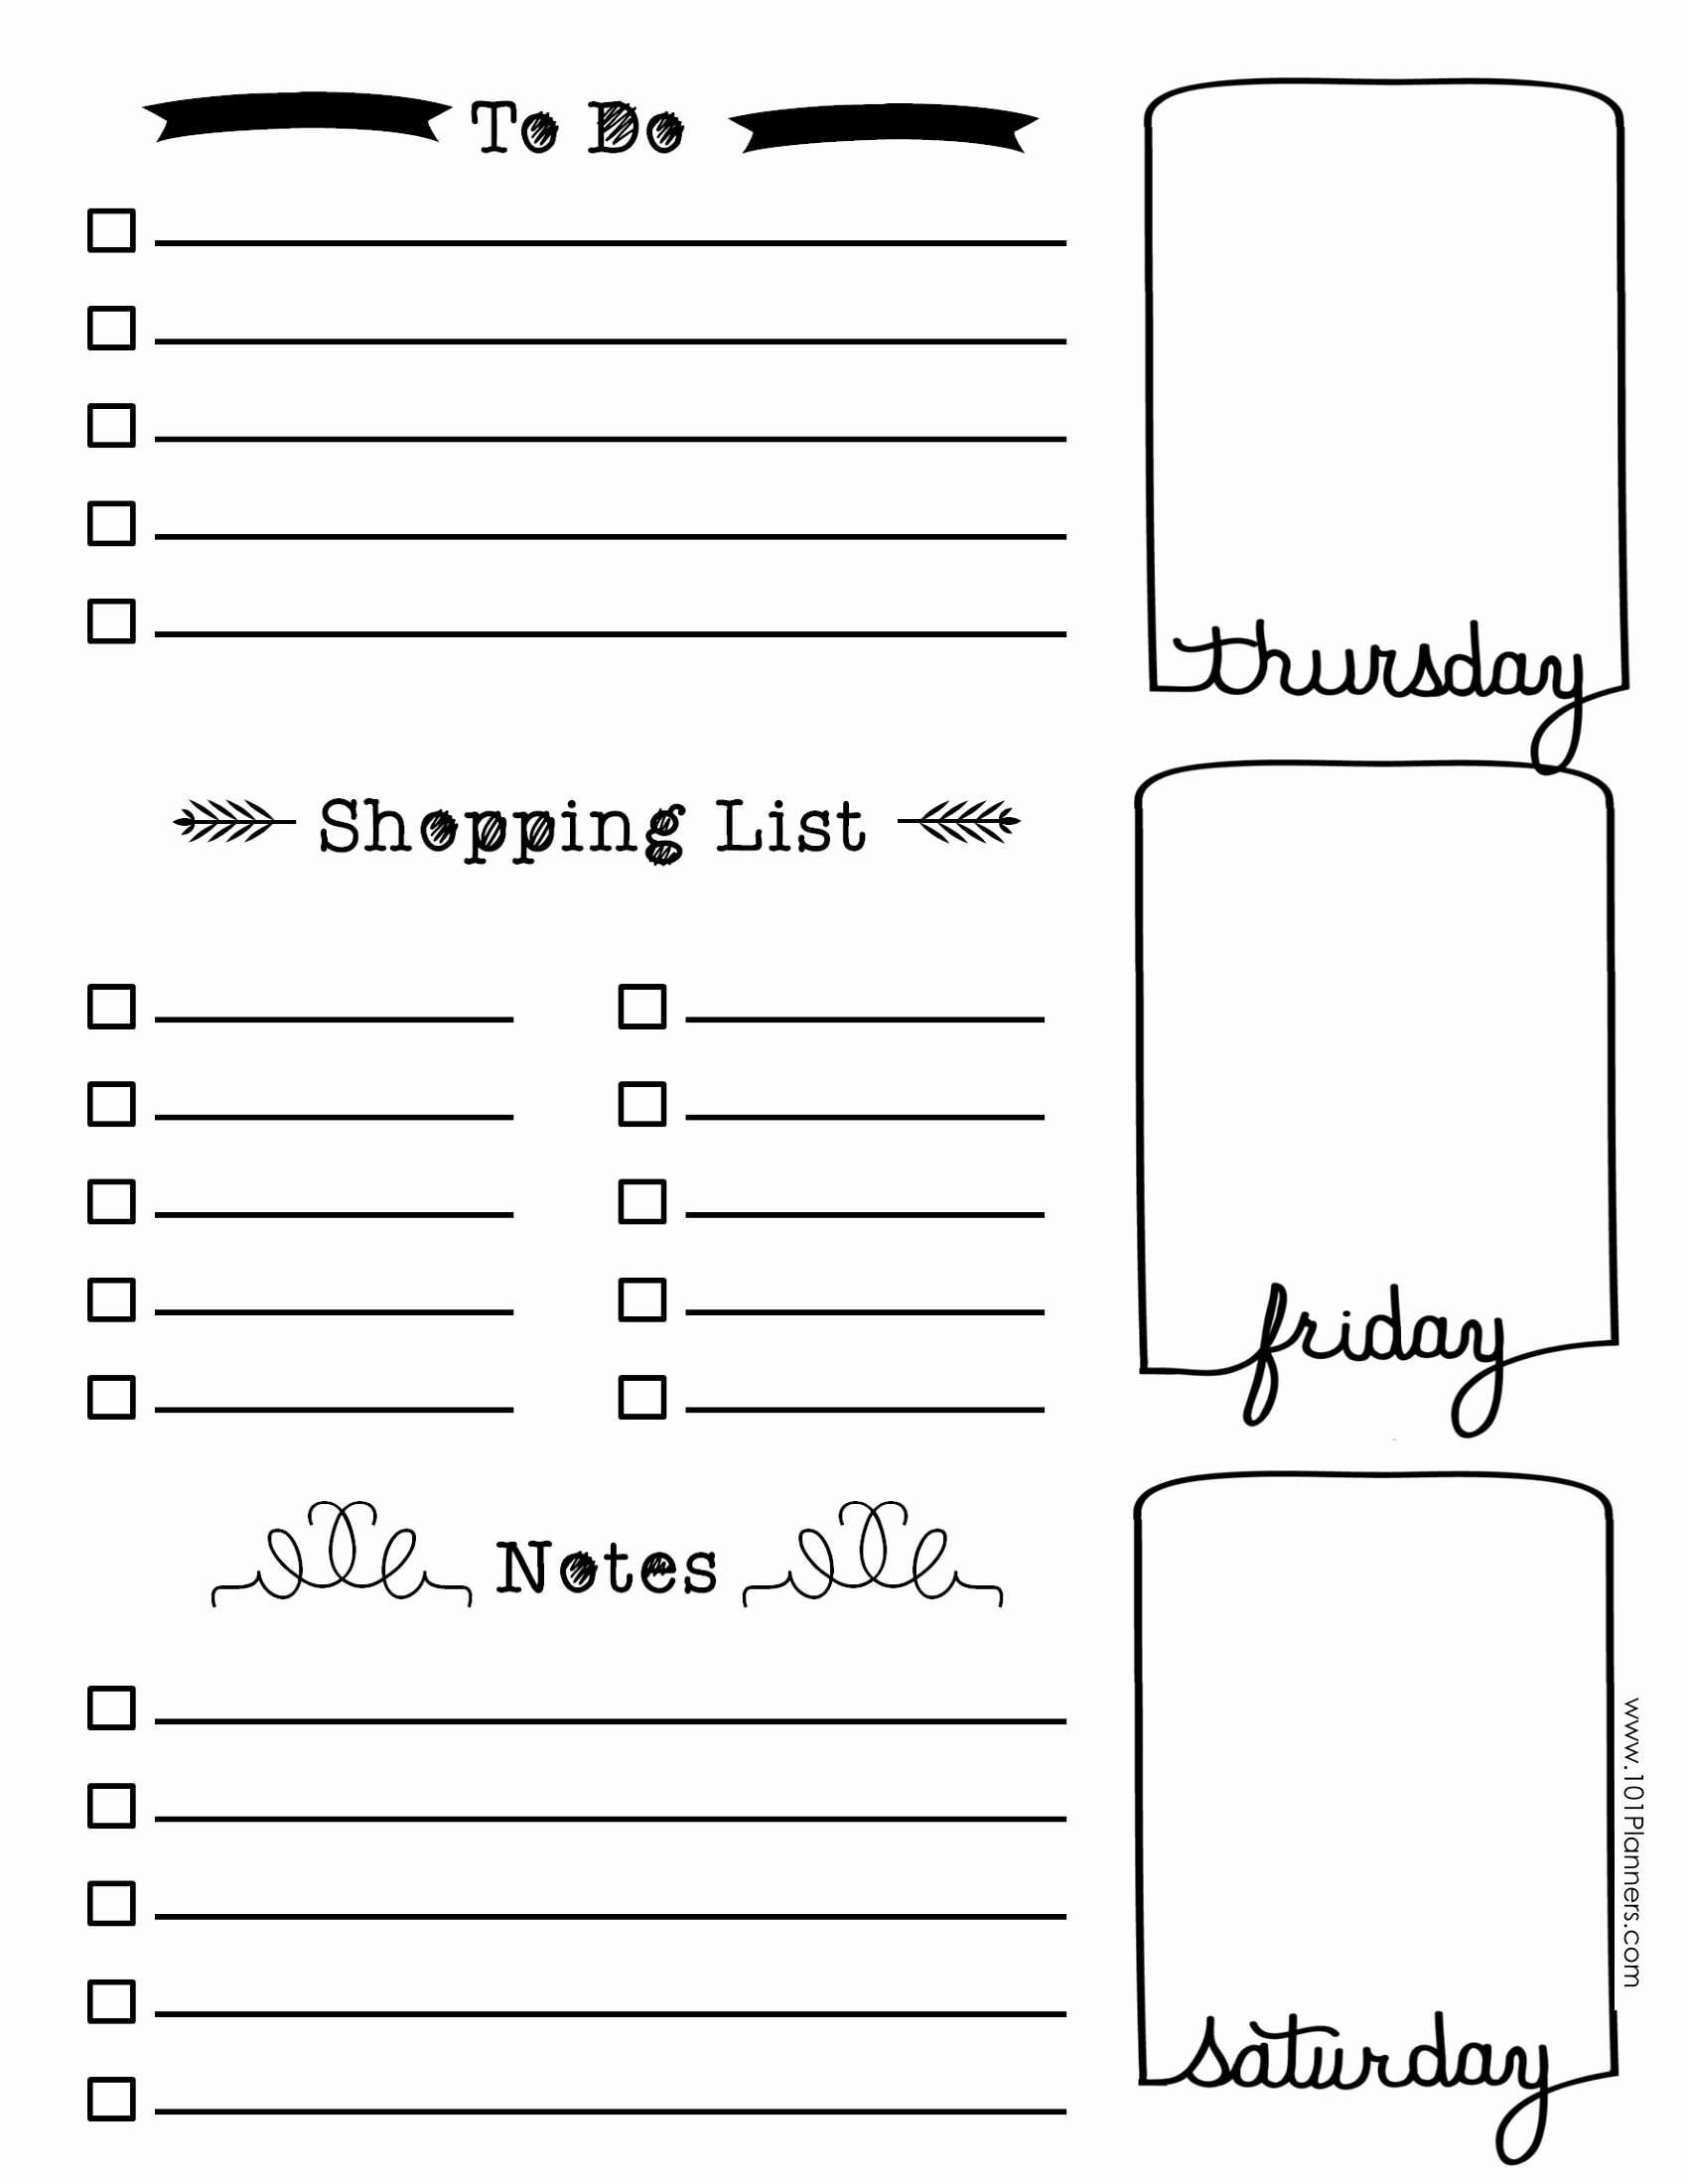 Bullet Journal Pdf Template Awesome Bullet Journal Template Pdf Templates Collections